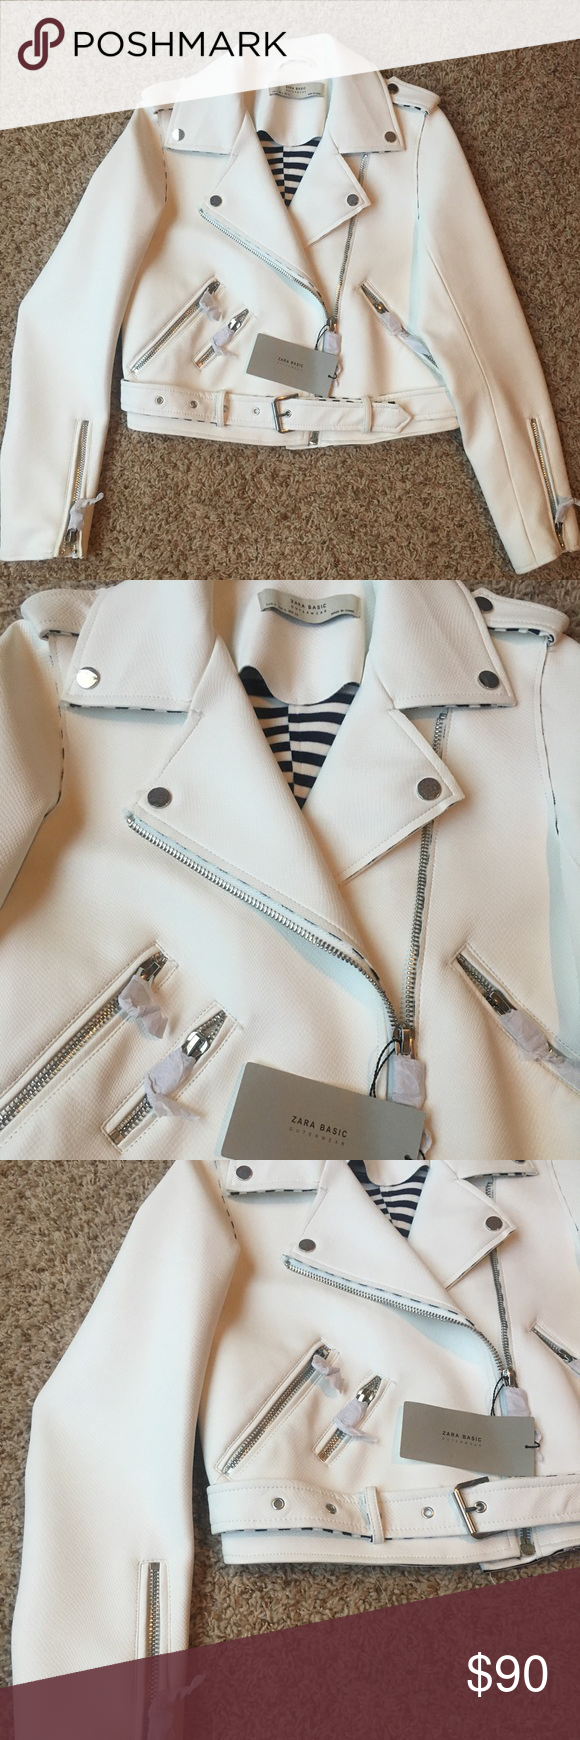 NEW* ZARA Basic Outerwear White Biker Jacket BRAND NEW